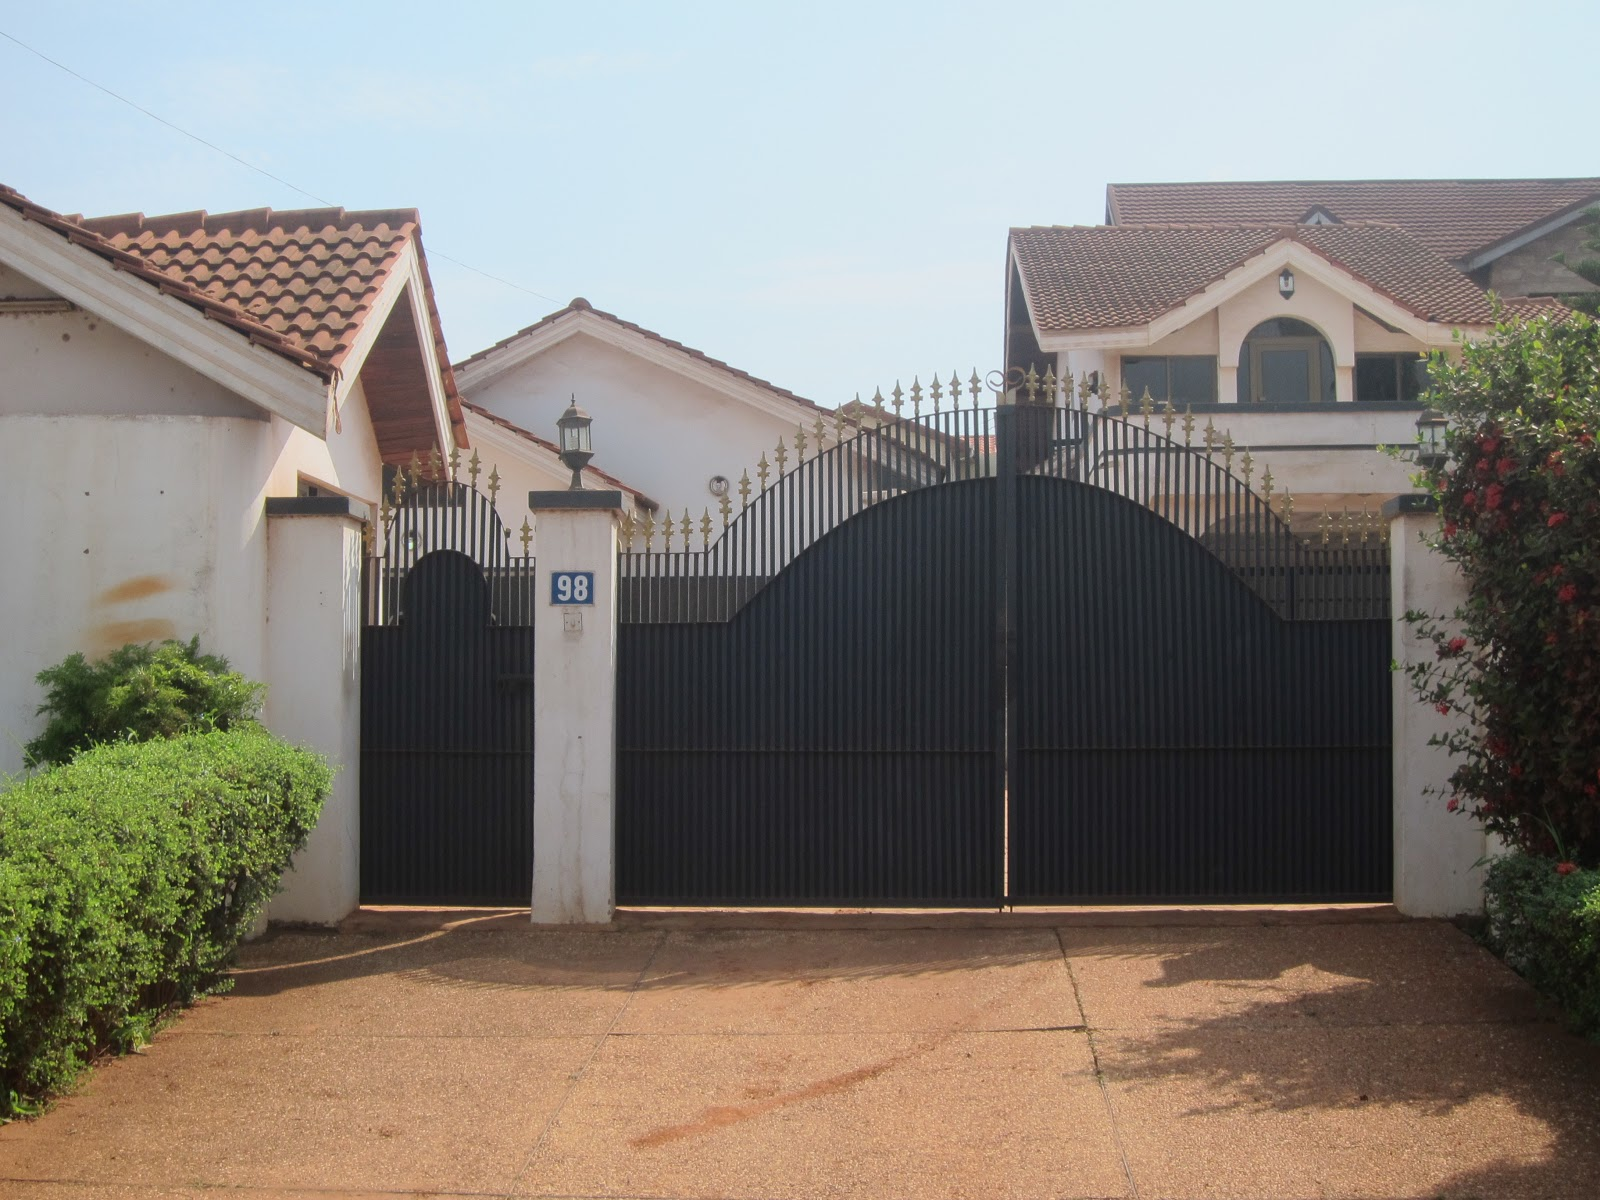 Ghanaian Houses Gate